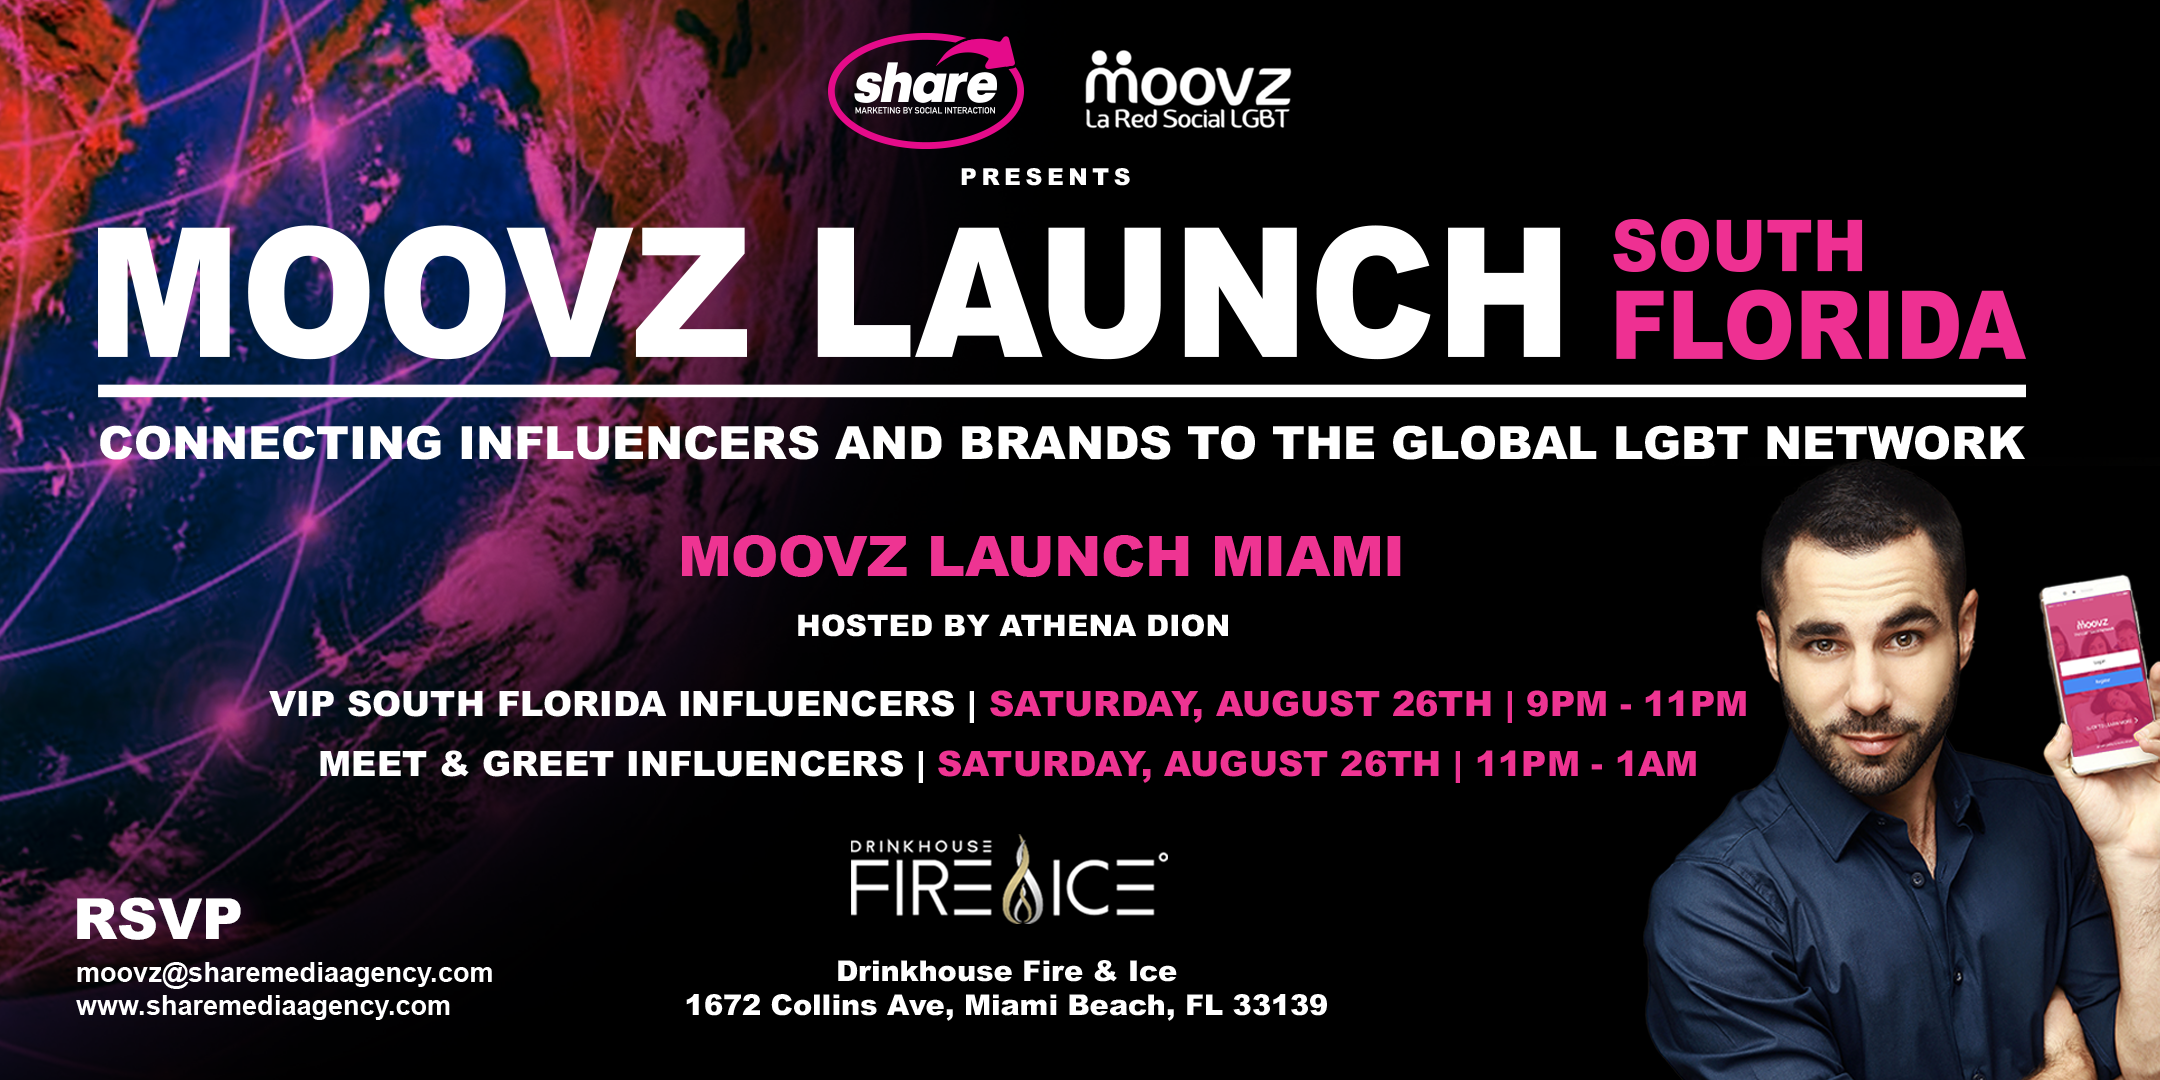 Moovz Launch Miami